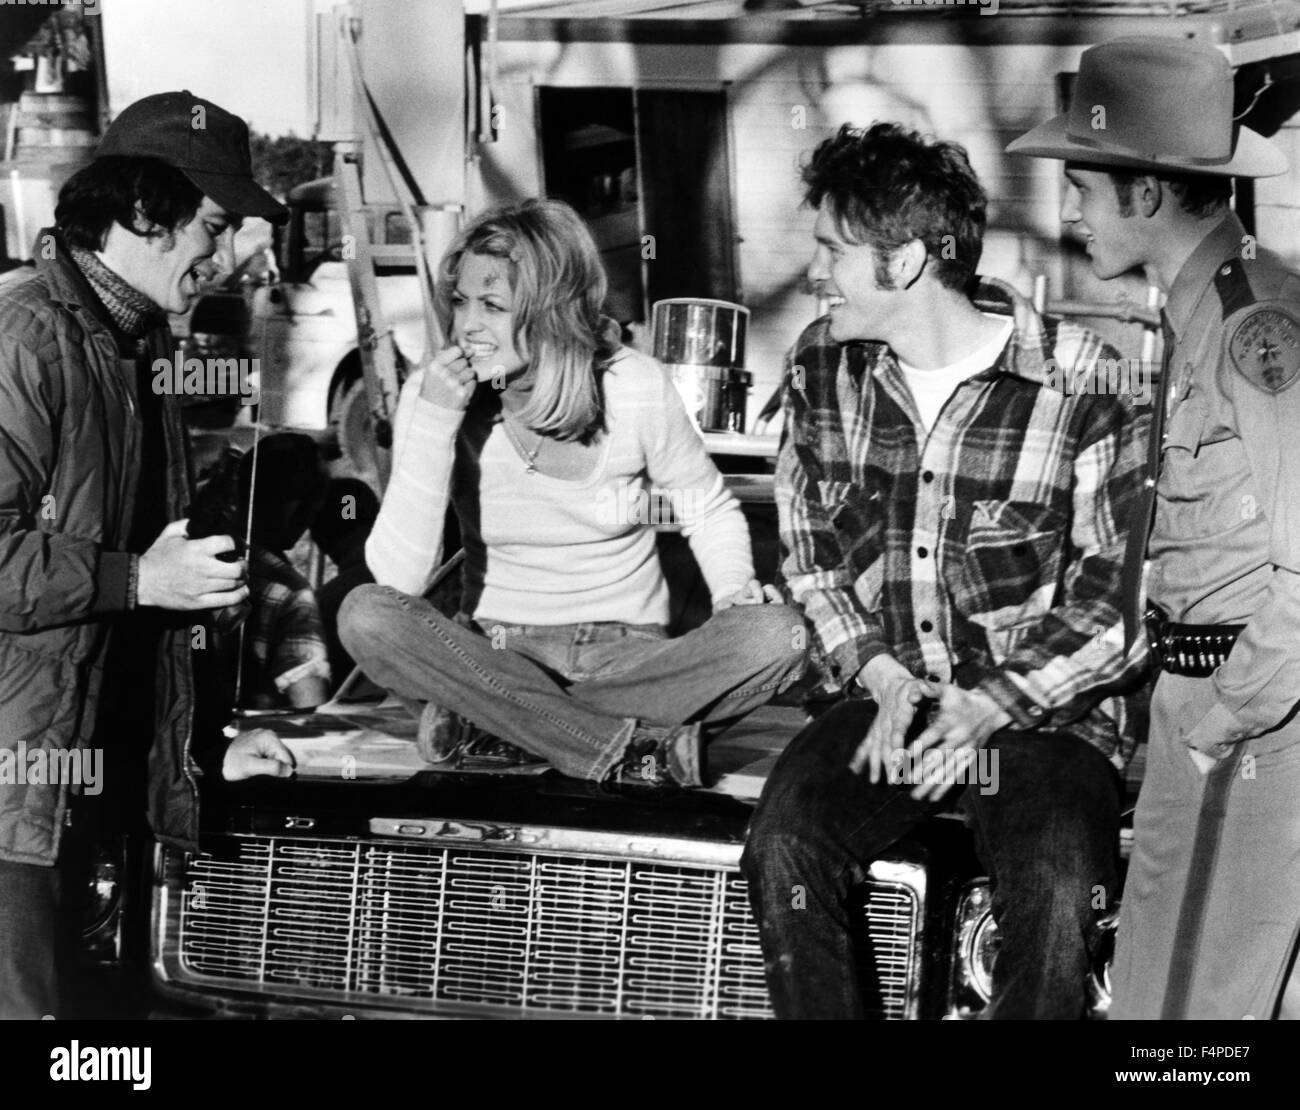 Steven Spielberg, Goldie Hawn, William Atherton, Michael Sacks / The Sugarland Express 1974 directed by Steven Spielberg - Stock Image